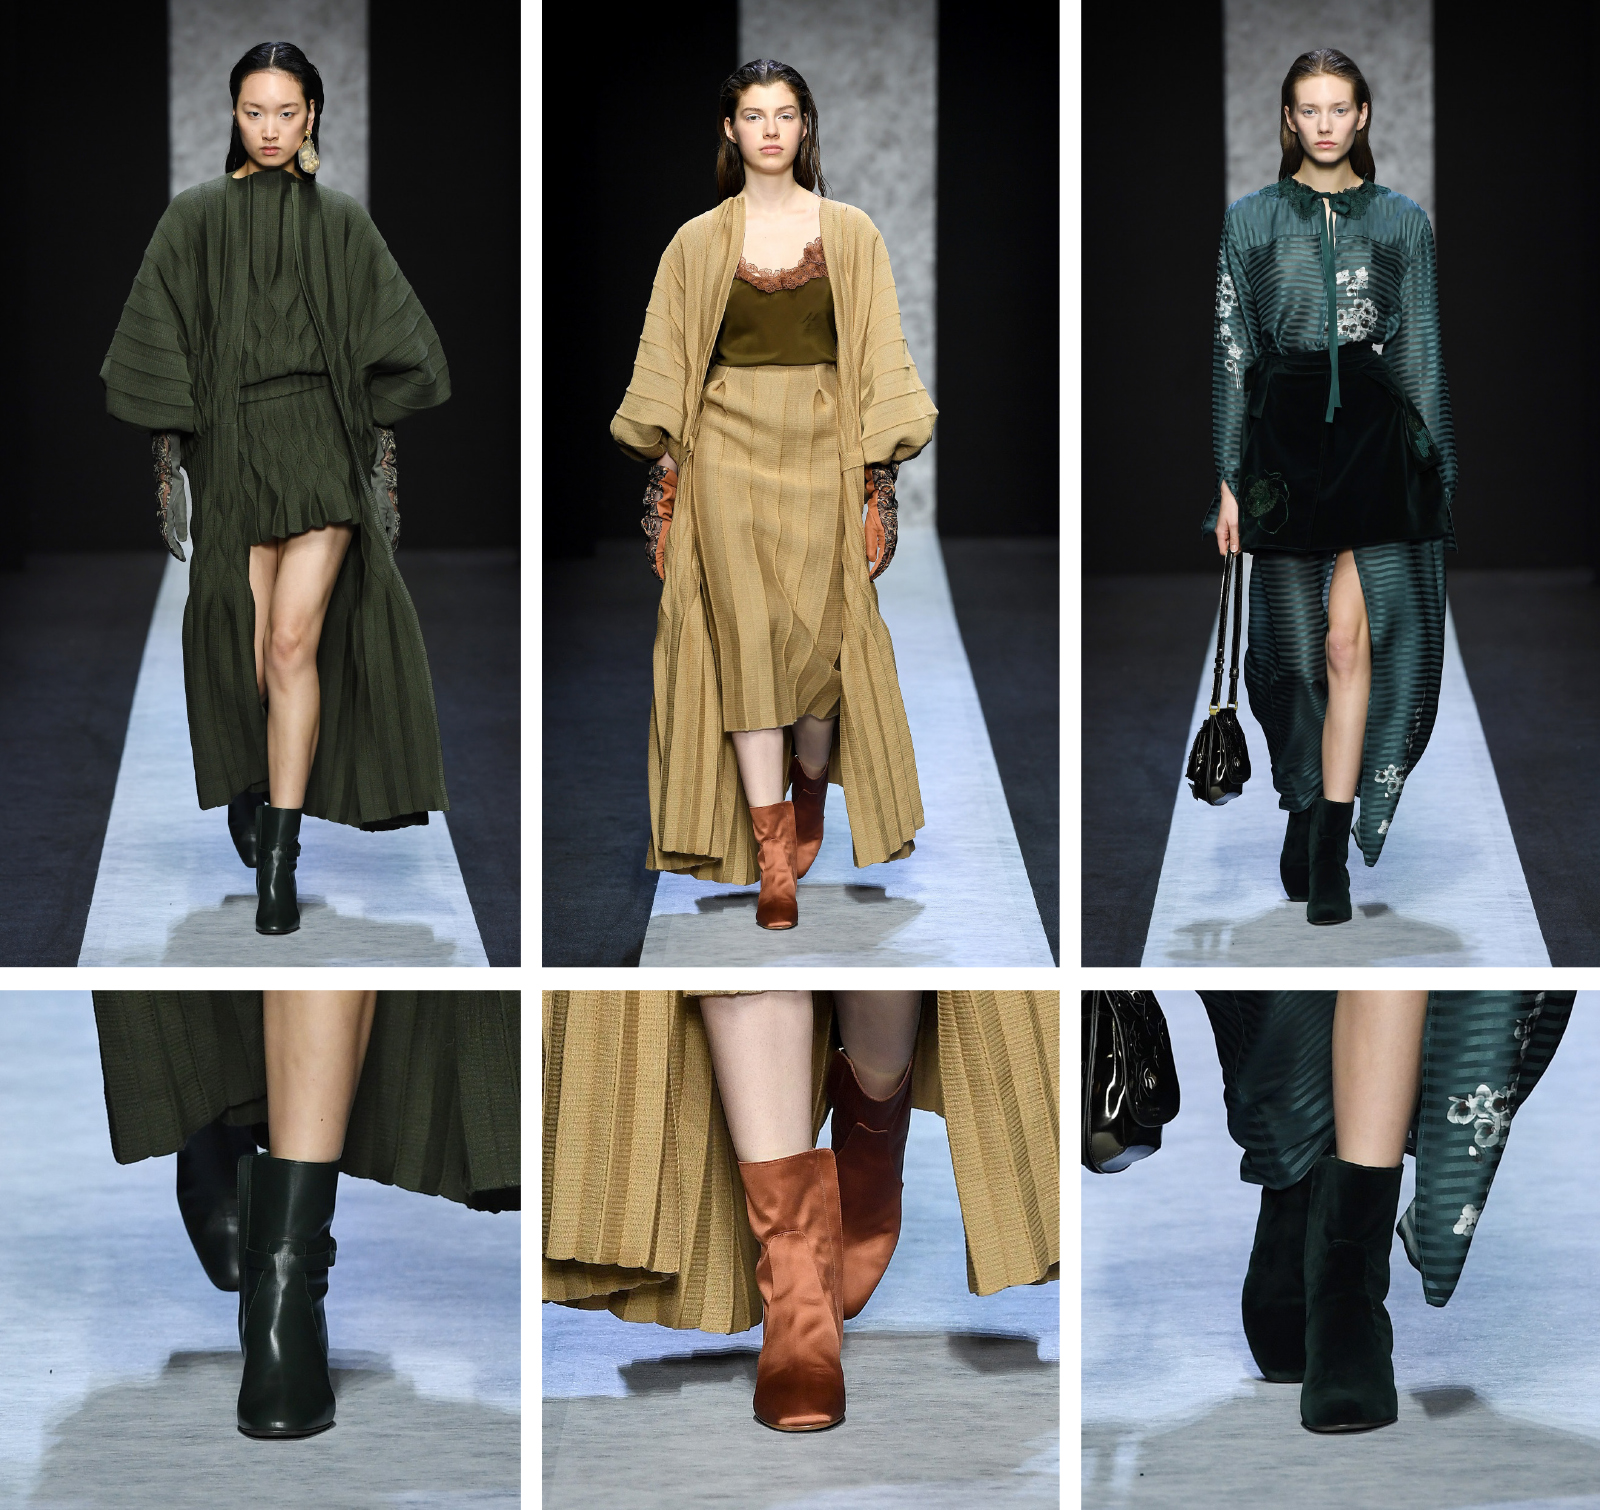 Alberto Del Biondi for Anteprima MFW Fall Winter 2020 2021